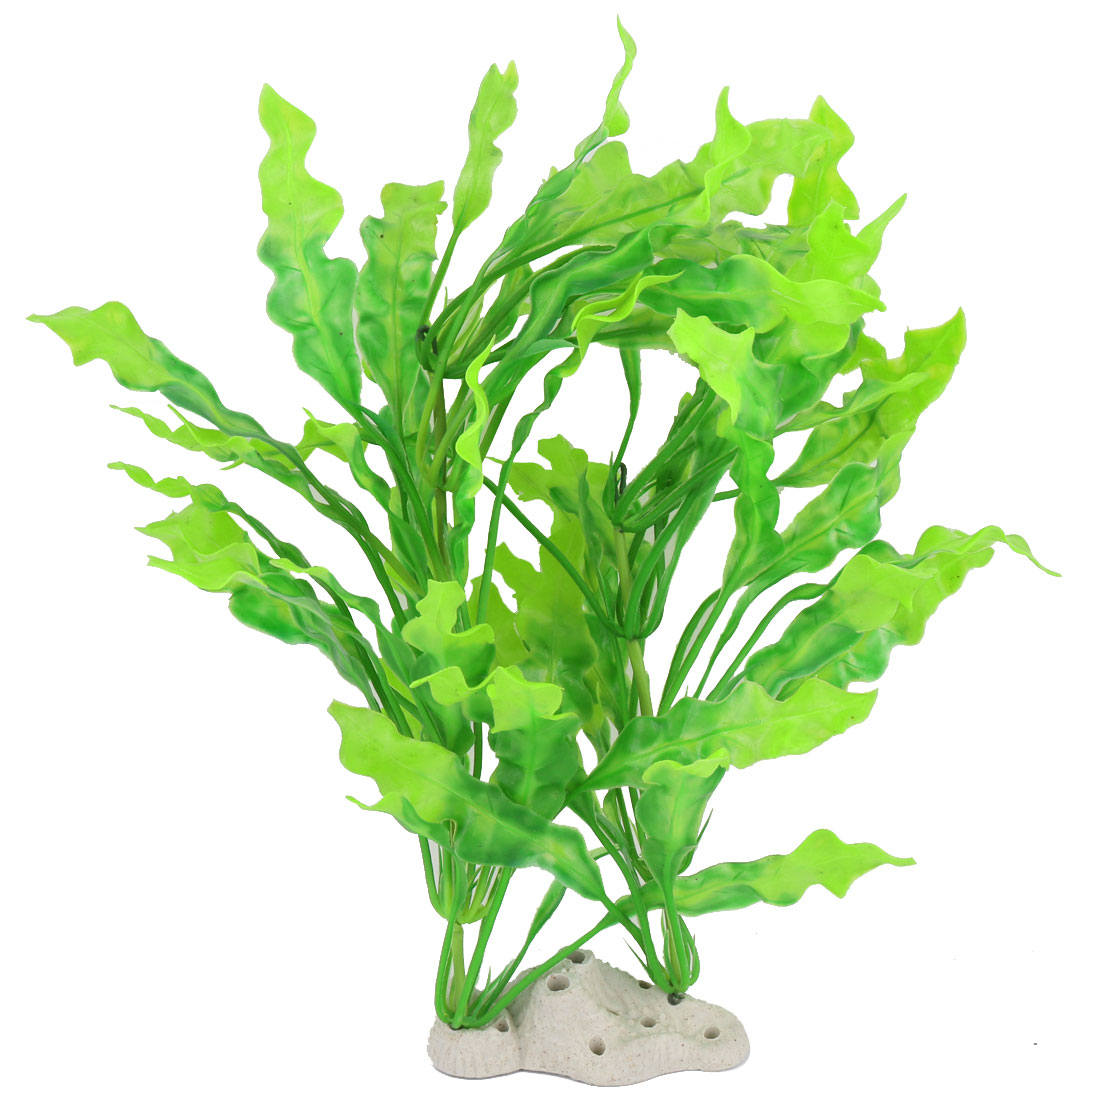 Aquarium Ceramic Base Plastic Artificial Landscape Plant Grass Decor White Green